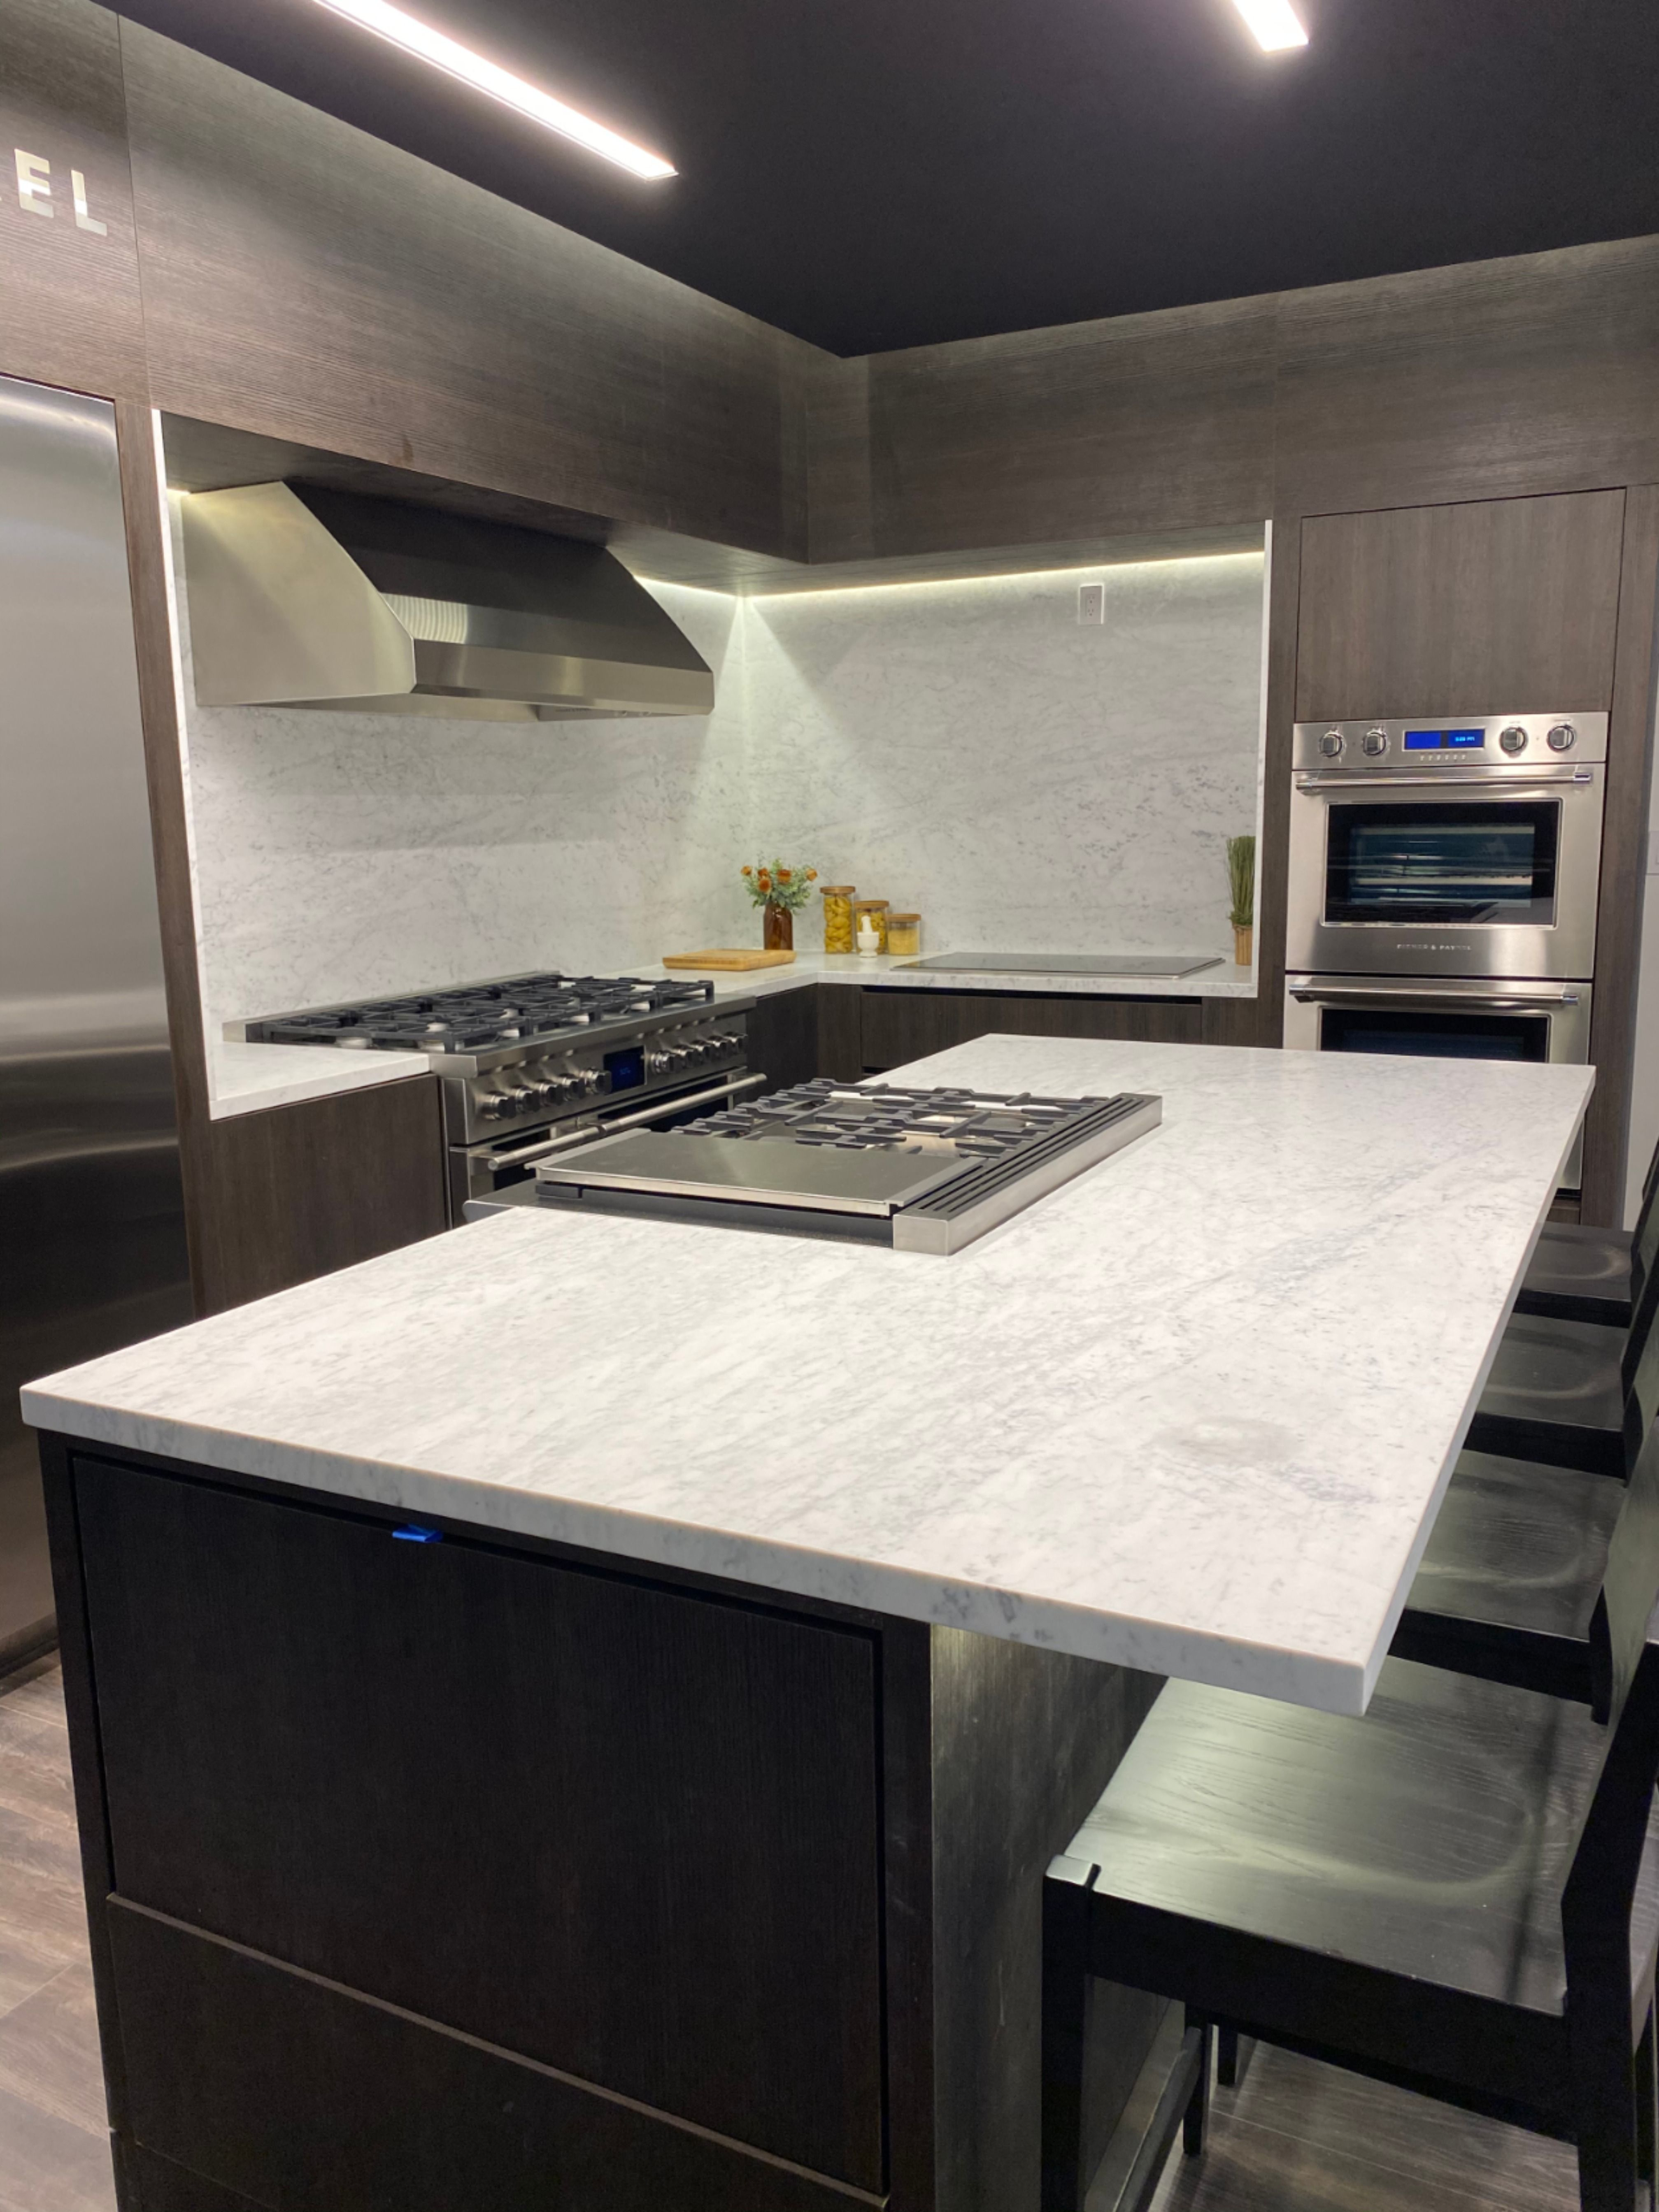 Executive Cabinetry In 2020 Custom Kitchens Design Kitchen Cabinet Design Kitchen Remodel